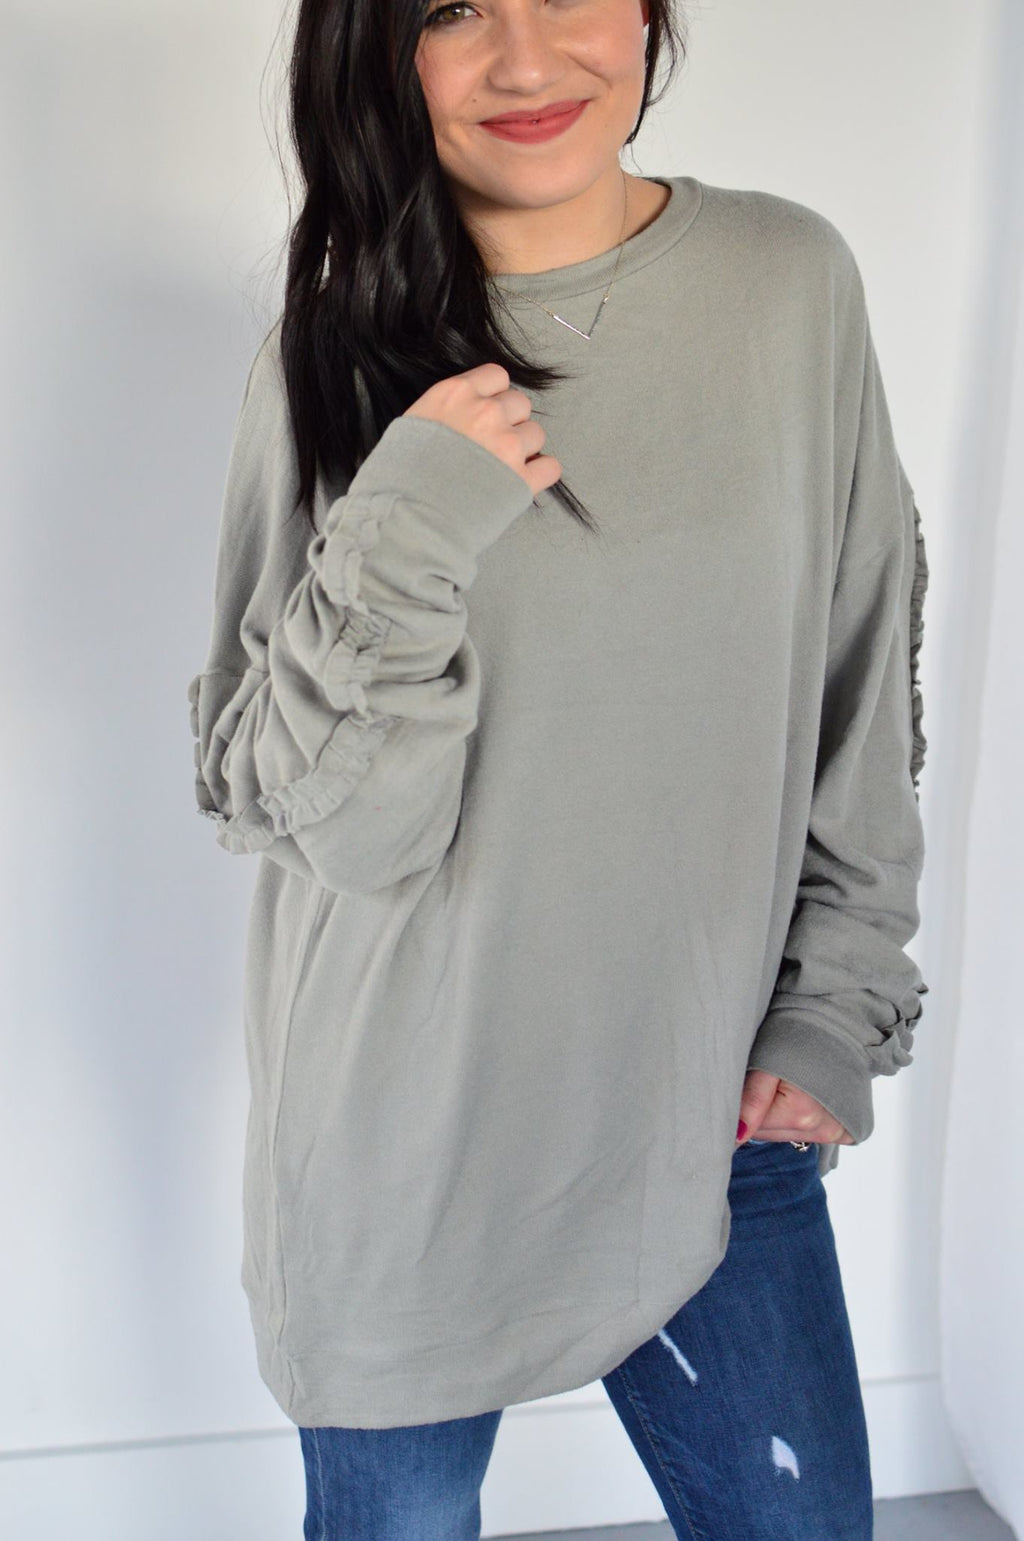 Spirit Ruffle Sleeve Sweater - MOB Fashion Boutique